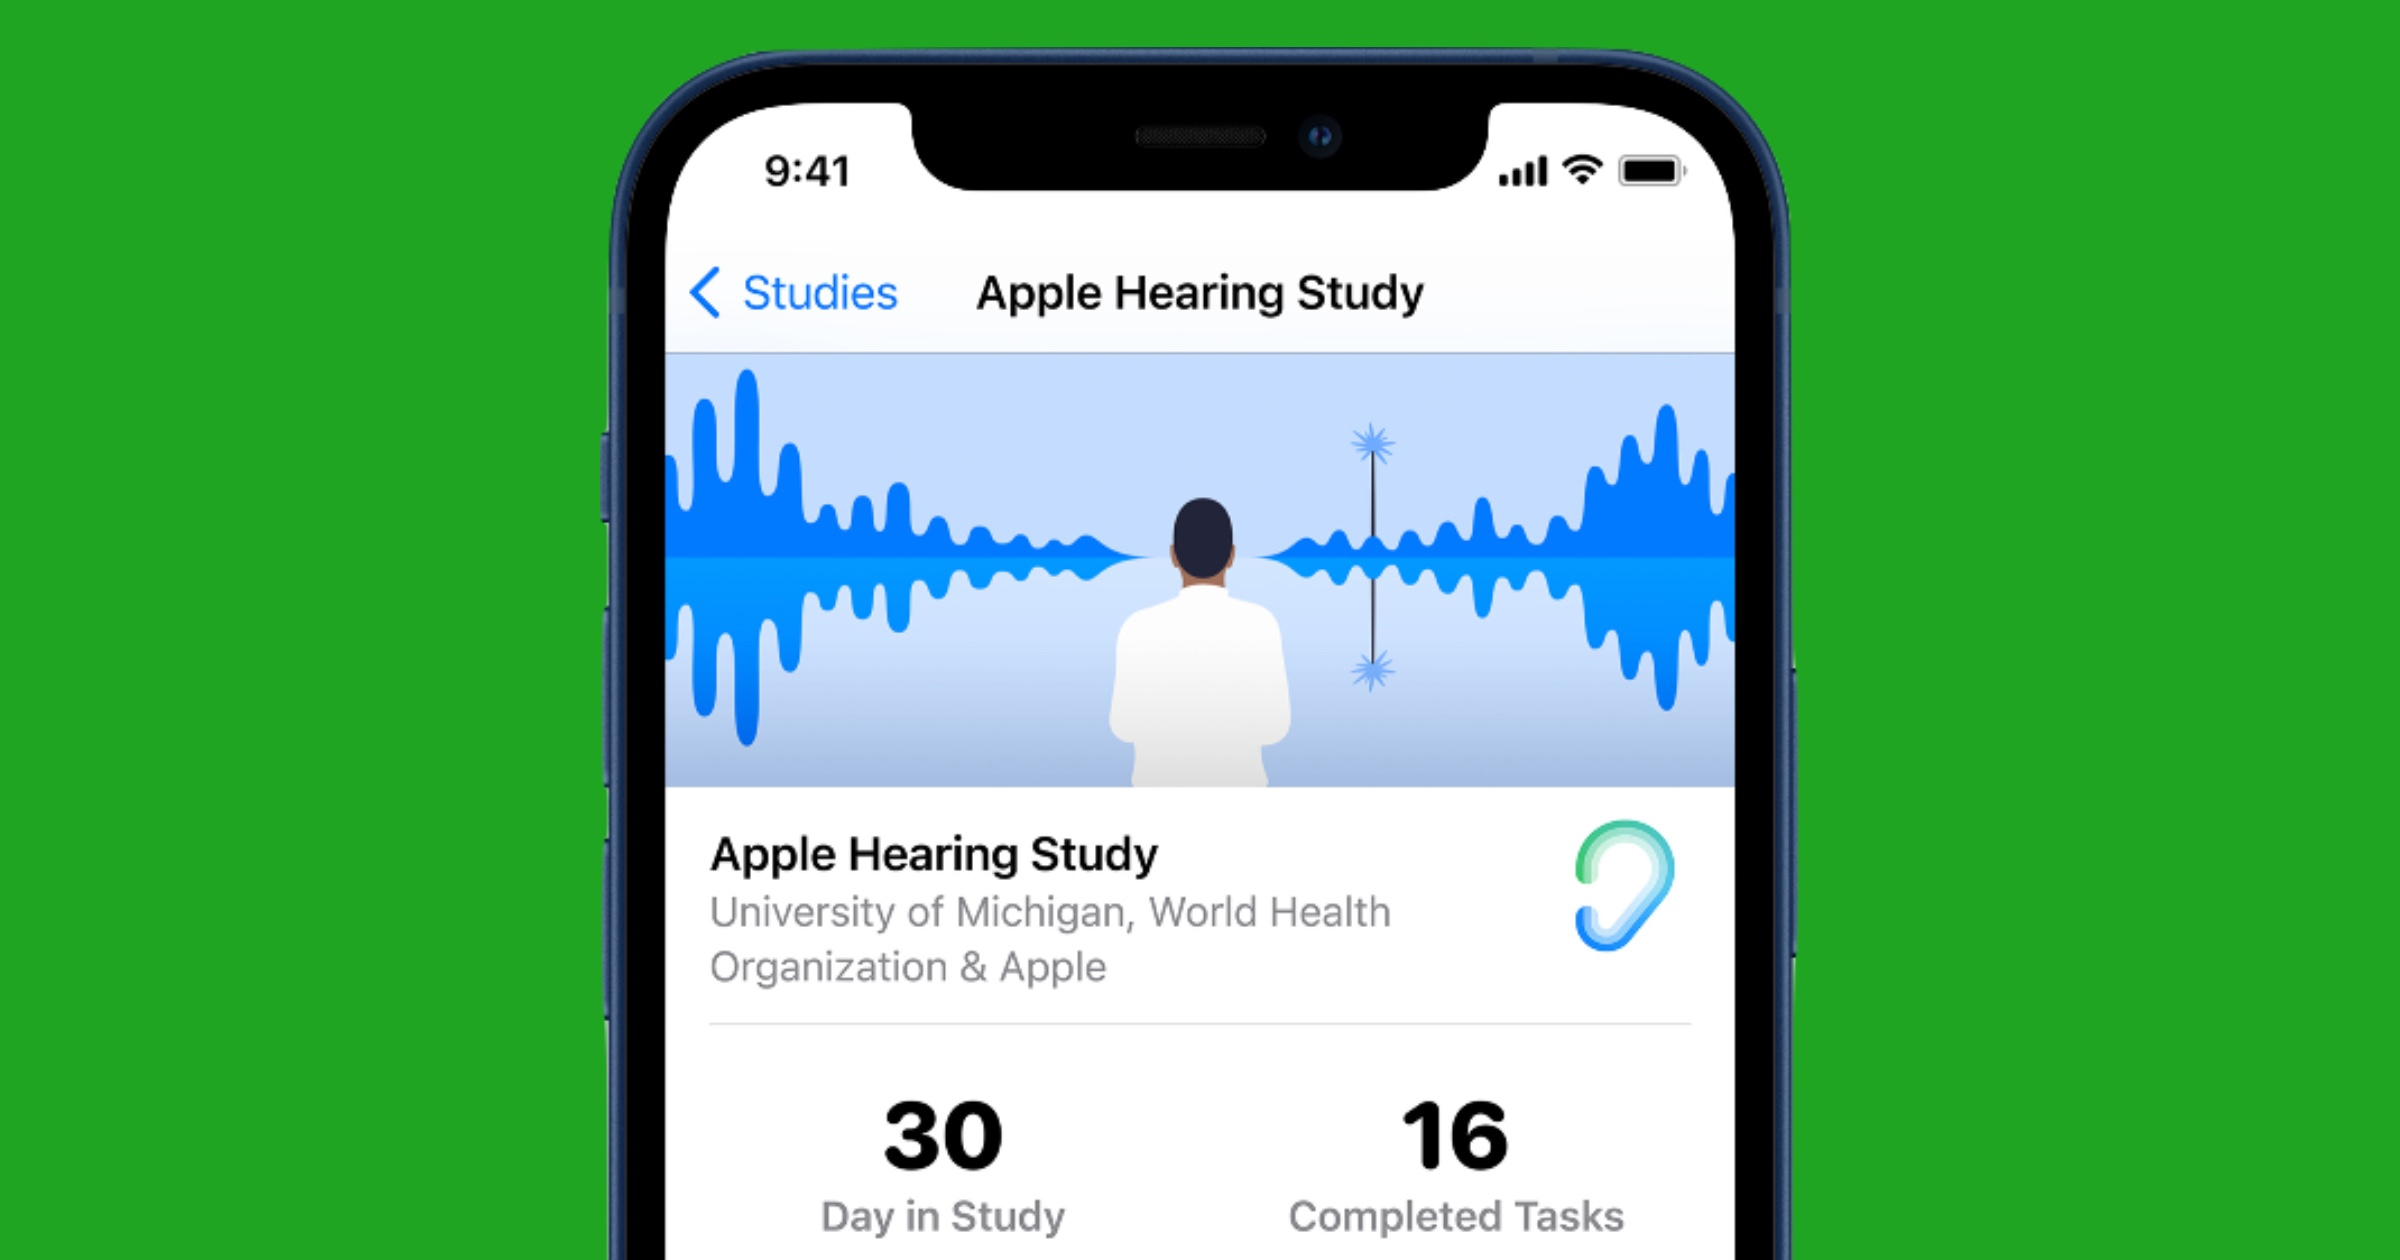 Apple hearing study research app